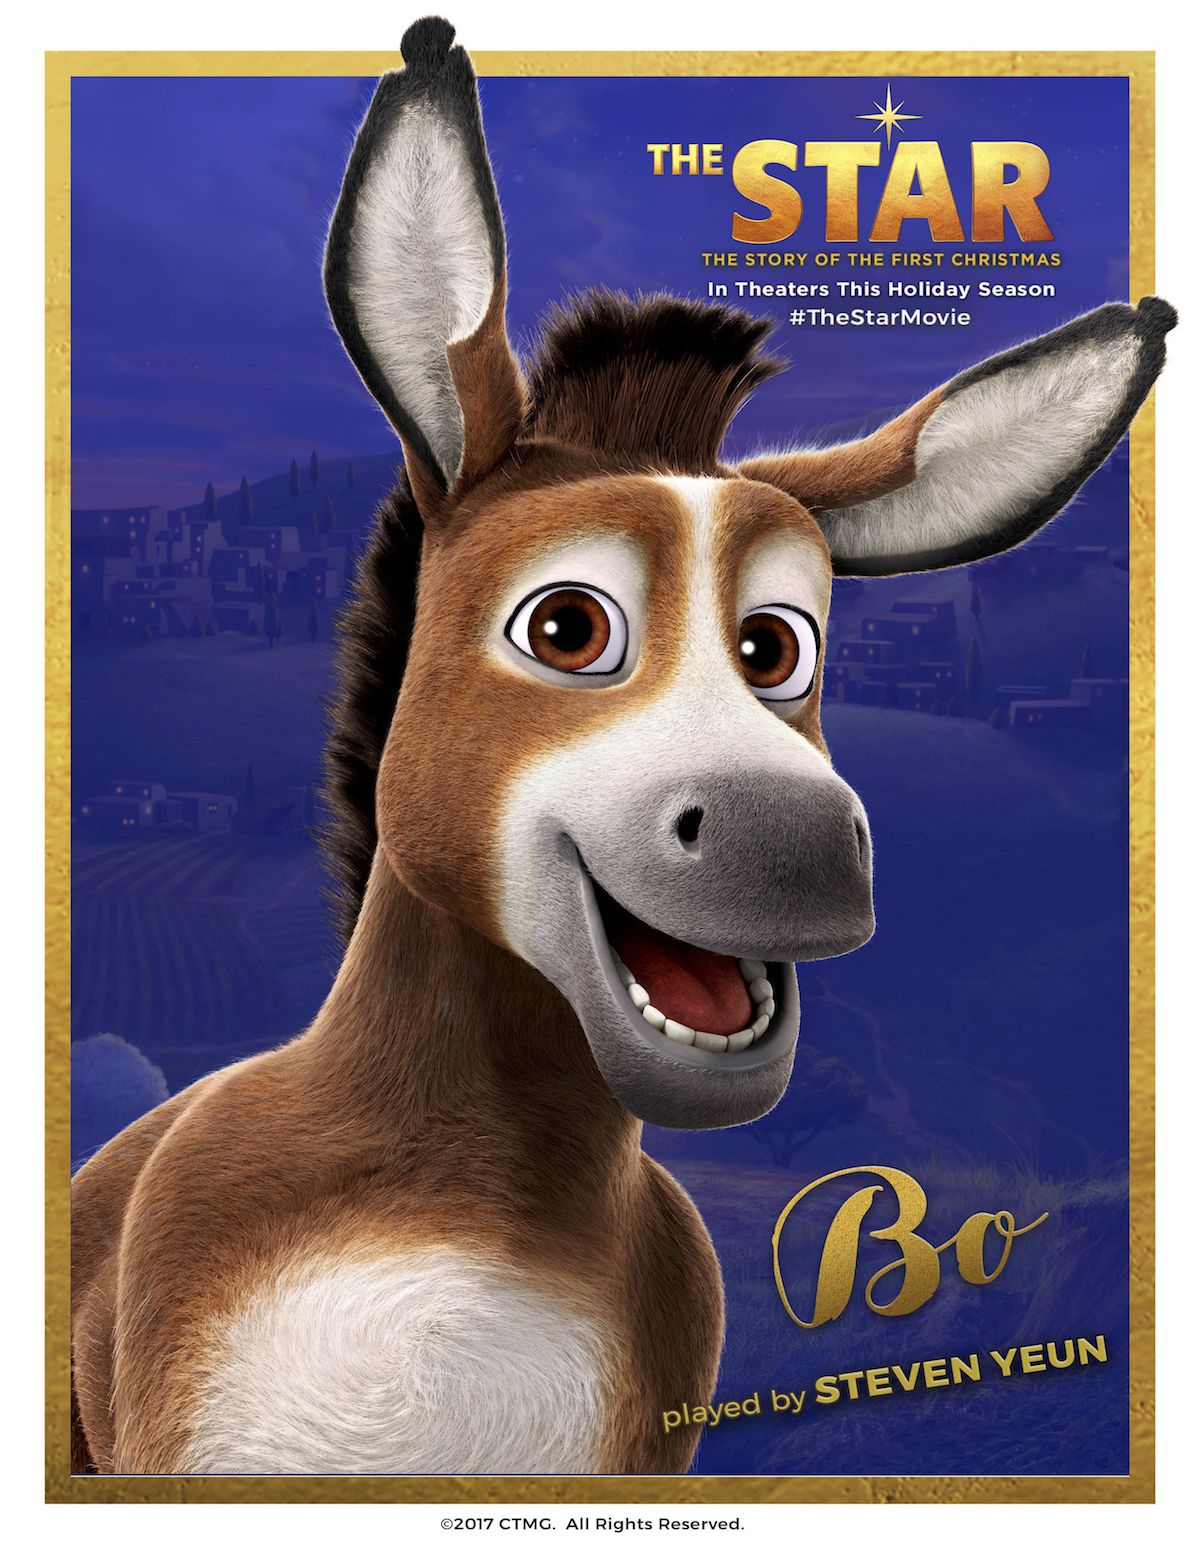 Meet Bo! This holiday season, witness The Star, the story